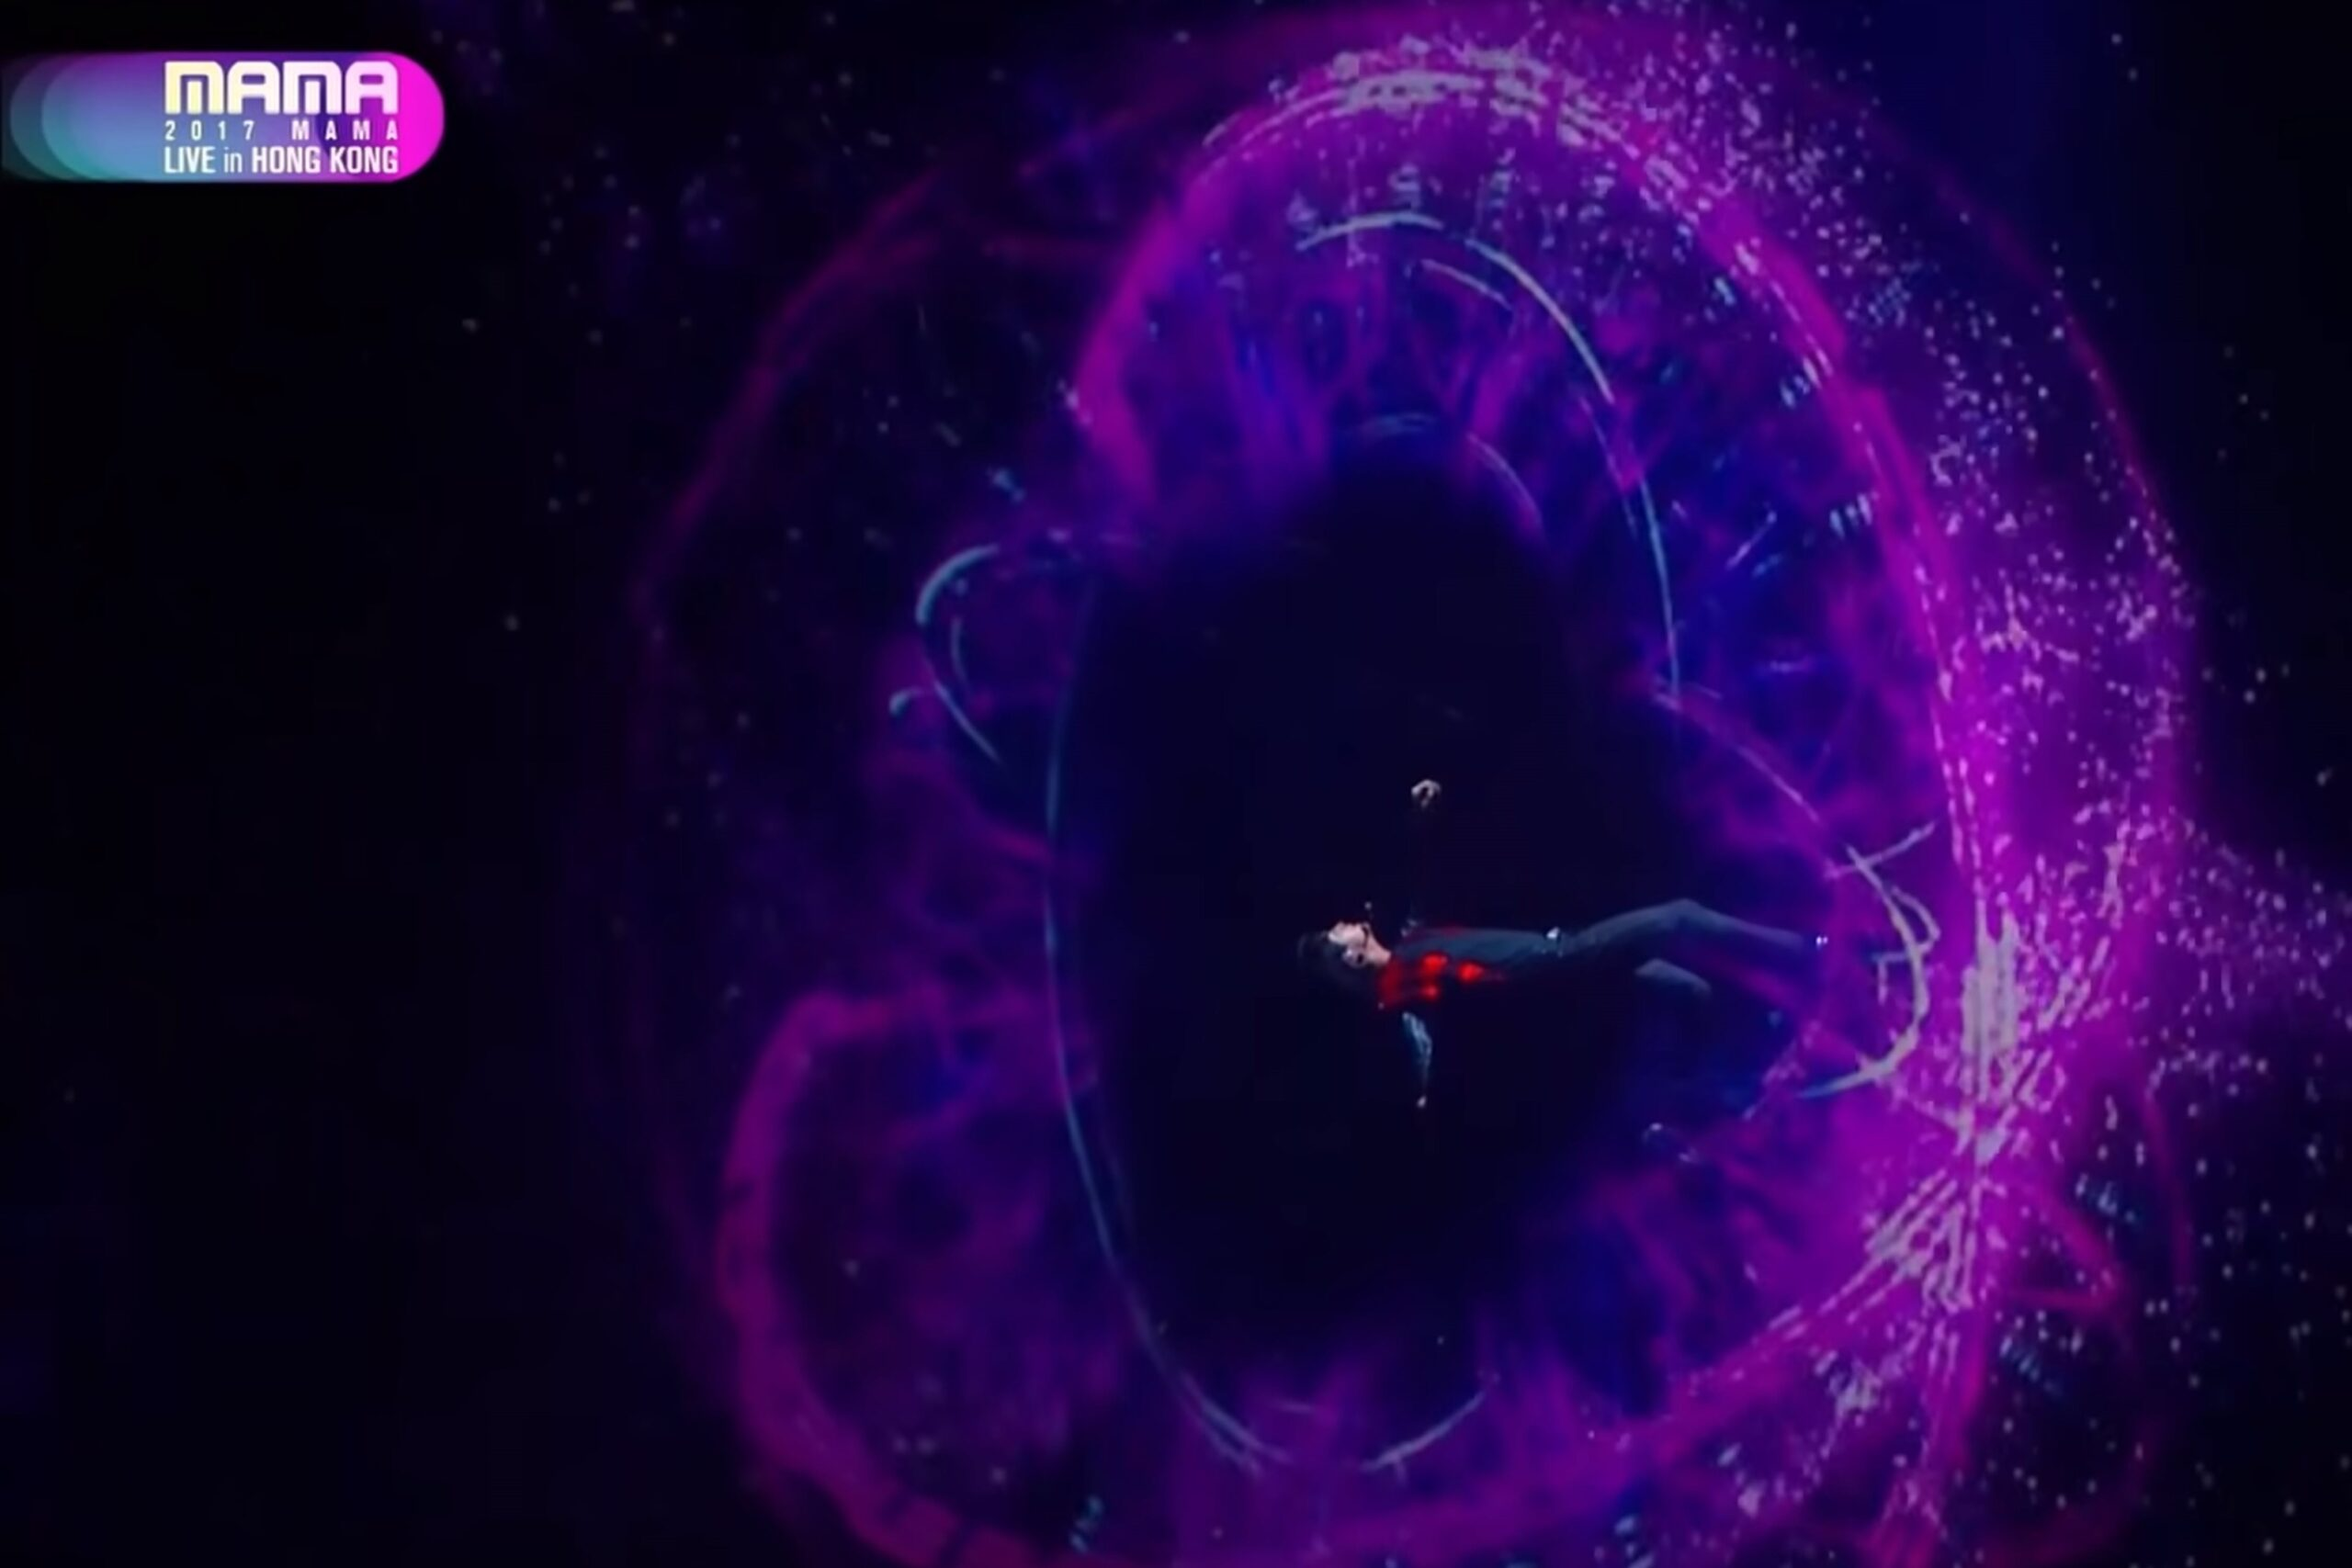 Jin is suspended in a fall at the center of a wormhole during the 'Beyond Wormhole' performance at MAMA 2-18